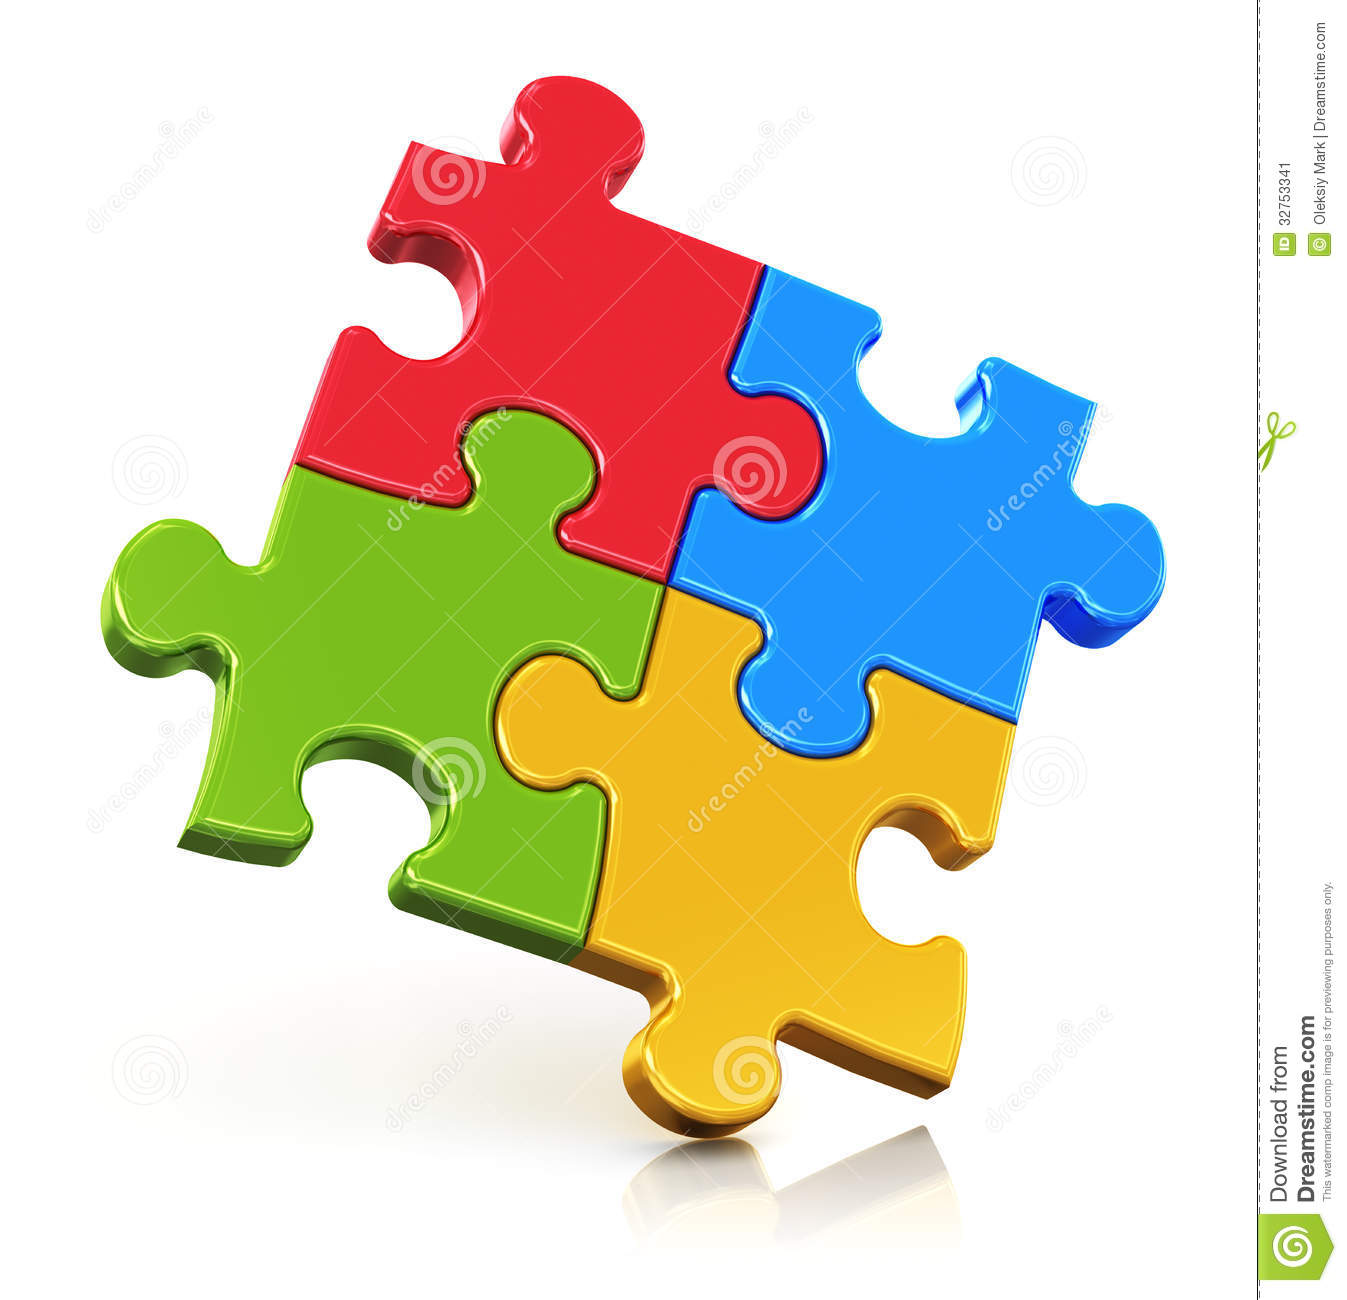 color-puzzle-pieces-creative-business-of